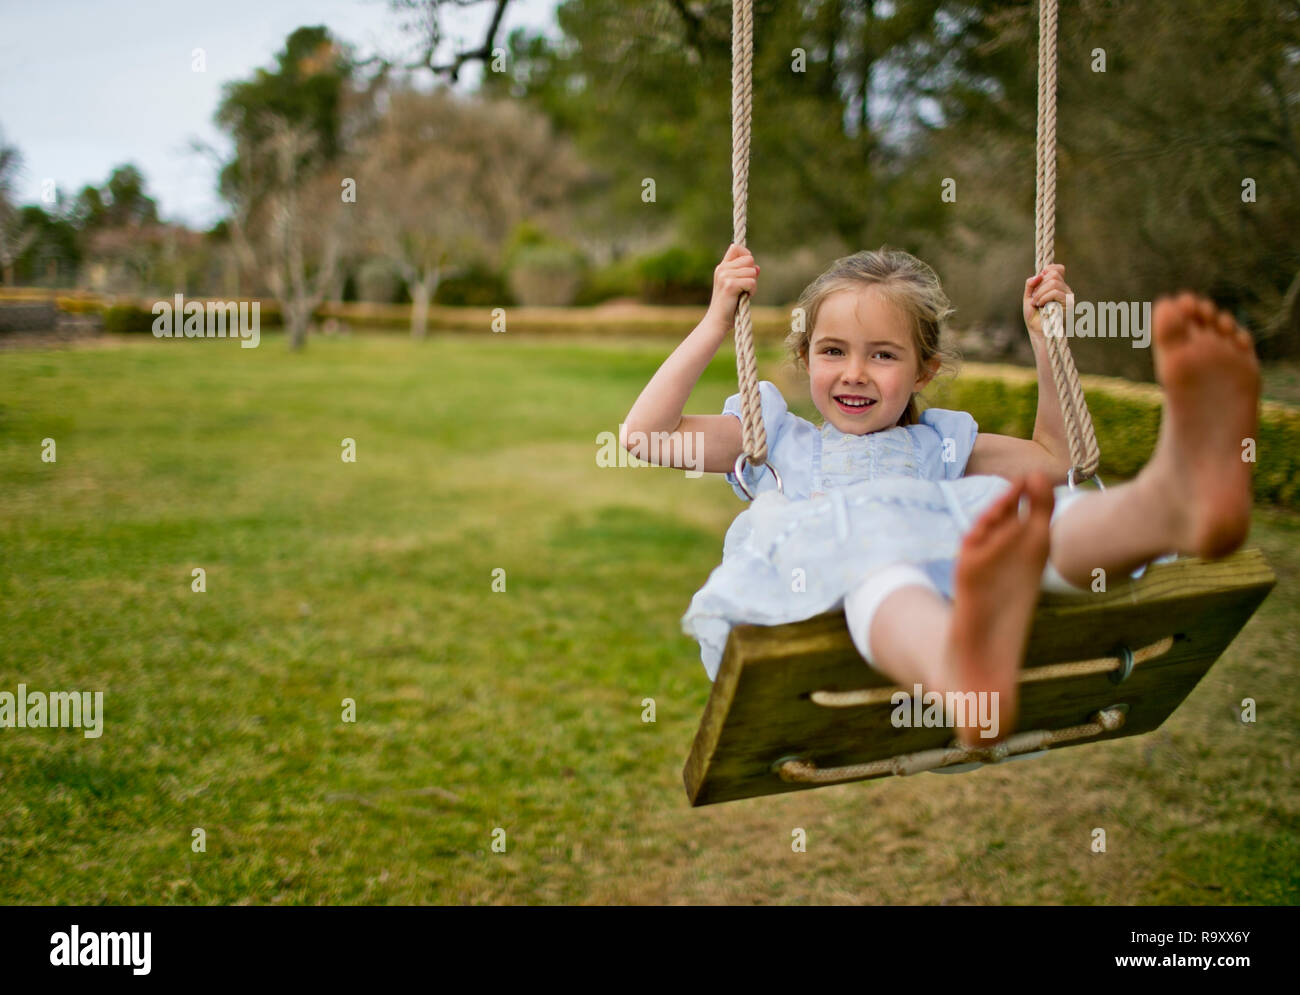 Portrait of a little girl playing on a swing in the back garden. Stock Photo